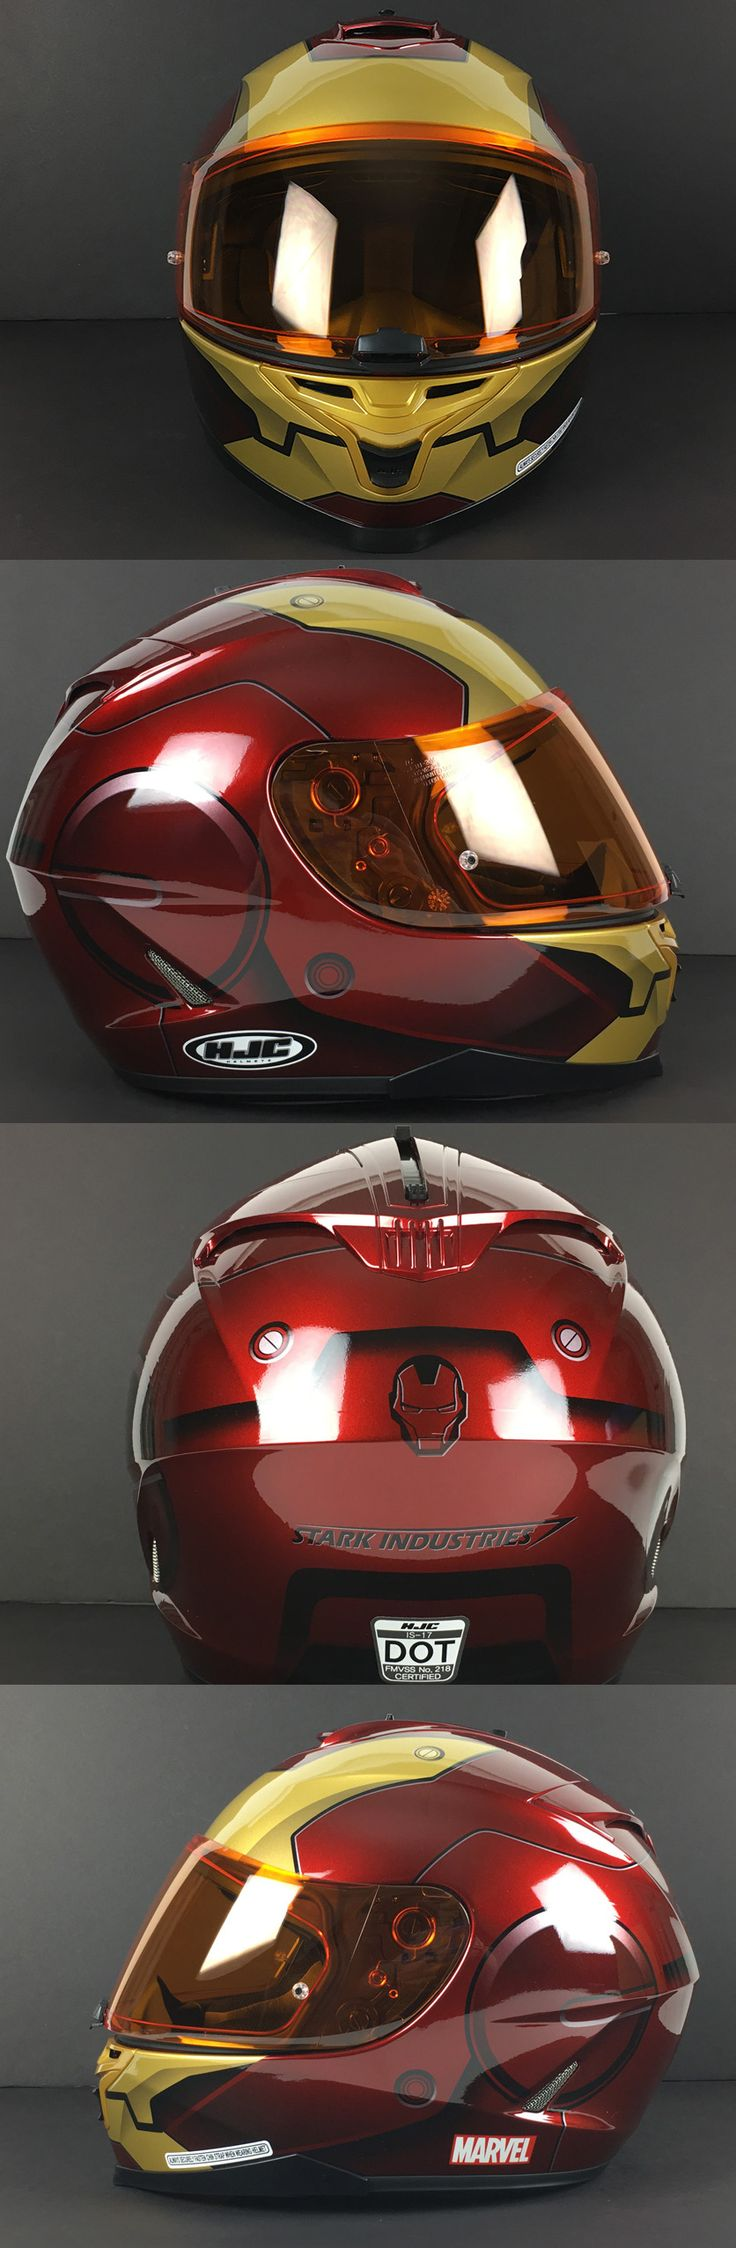 """HJC has partnered with Marvel to create the IS-17 Iron Man Helmet!  An advanced polycarbonate outer shell and multiple density EPS liner make the IS-17 lightweight and able to absorb impact in a crash. This helmet has an integrated """"SunShield"""" that is easy to operate via a switch on the top of the helmet."""